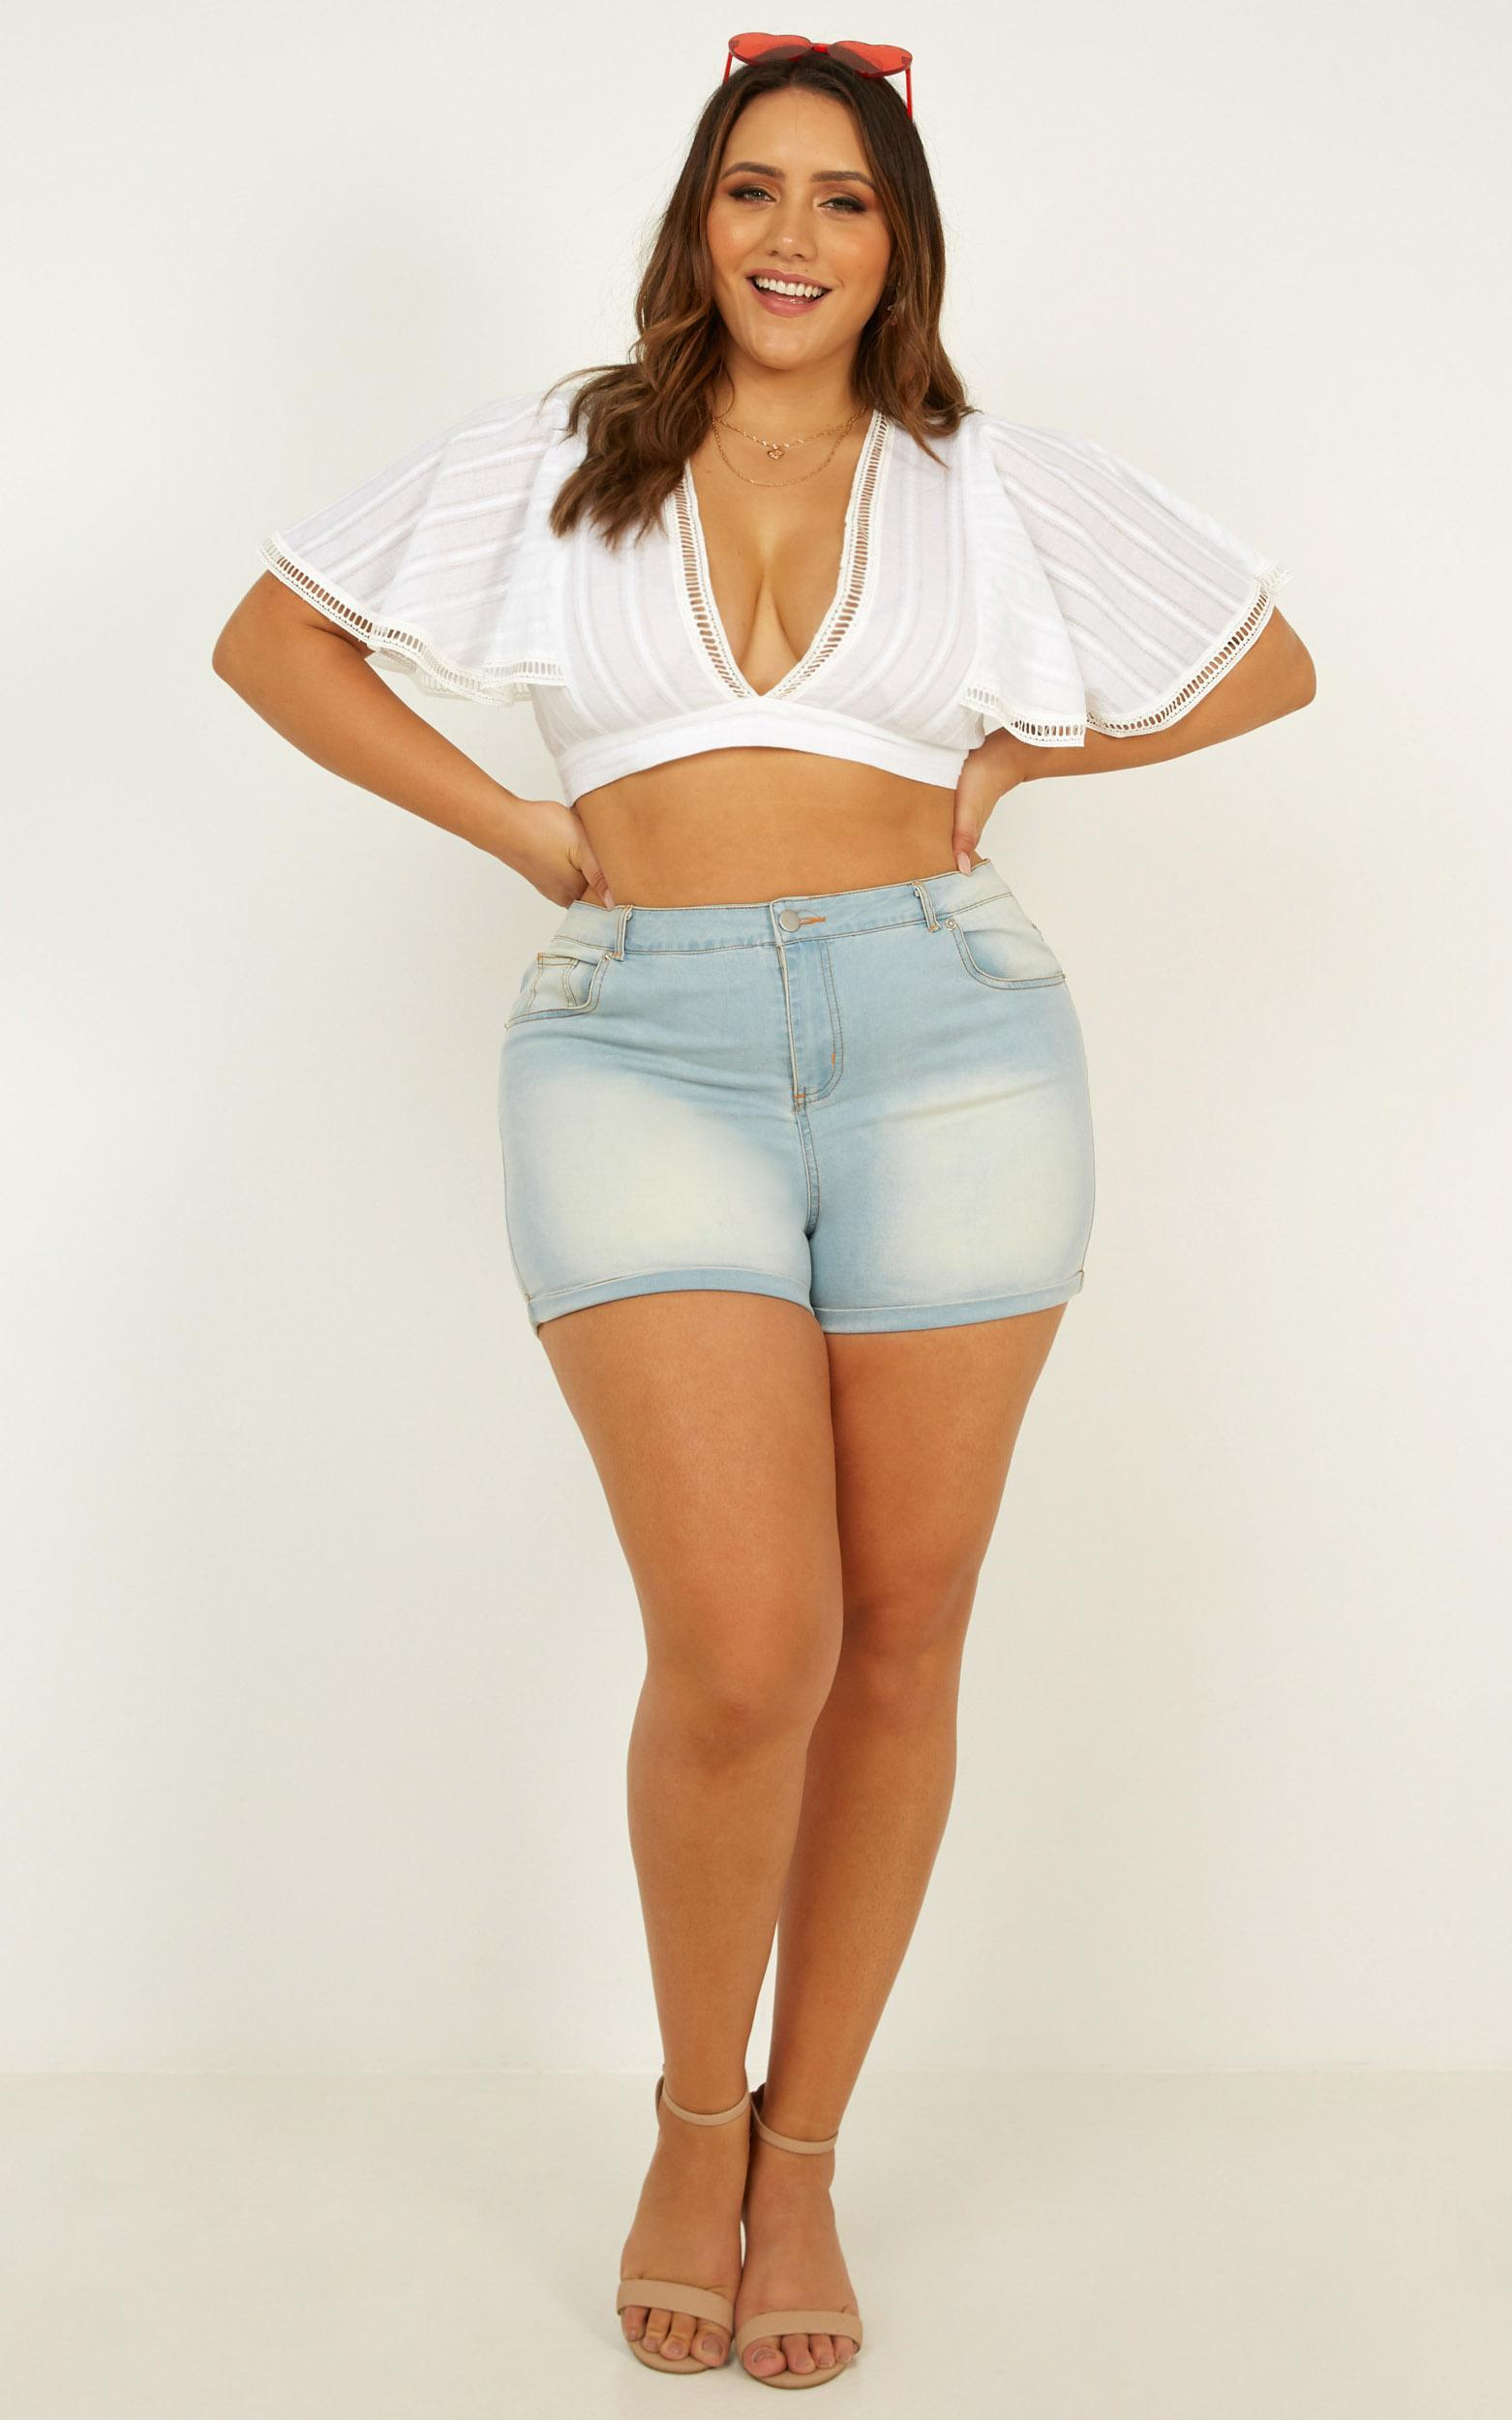 Missed Calls Yop top in white embroidery - 20 (XXXXL), White, hi-res image number null